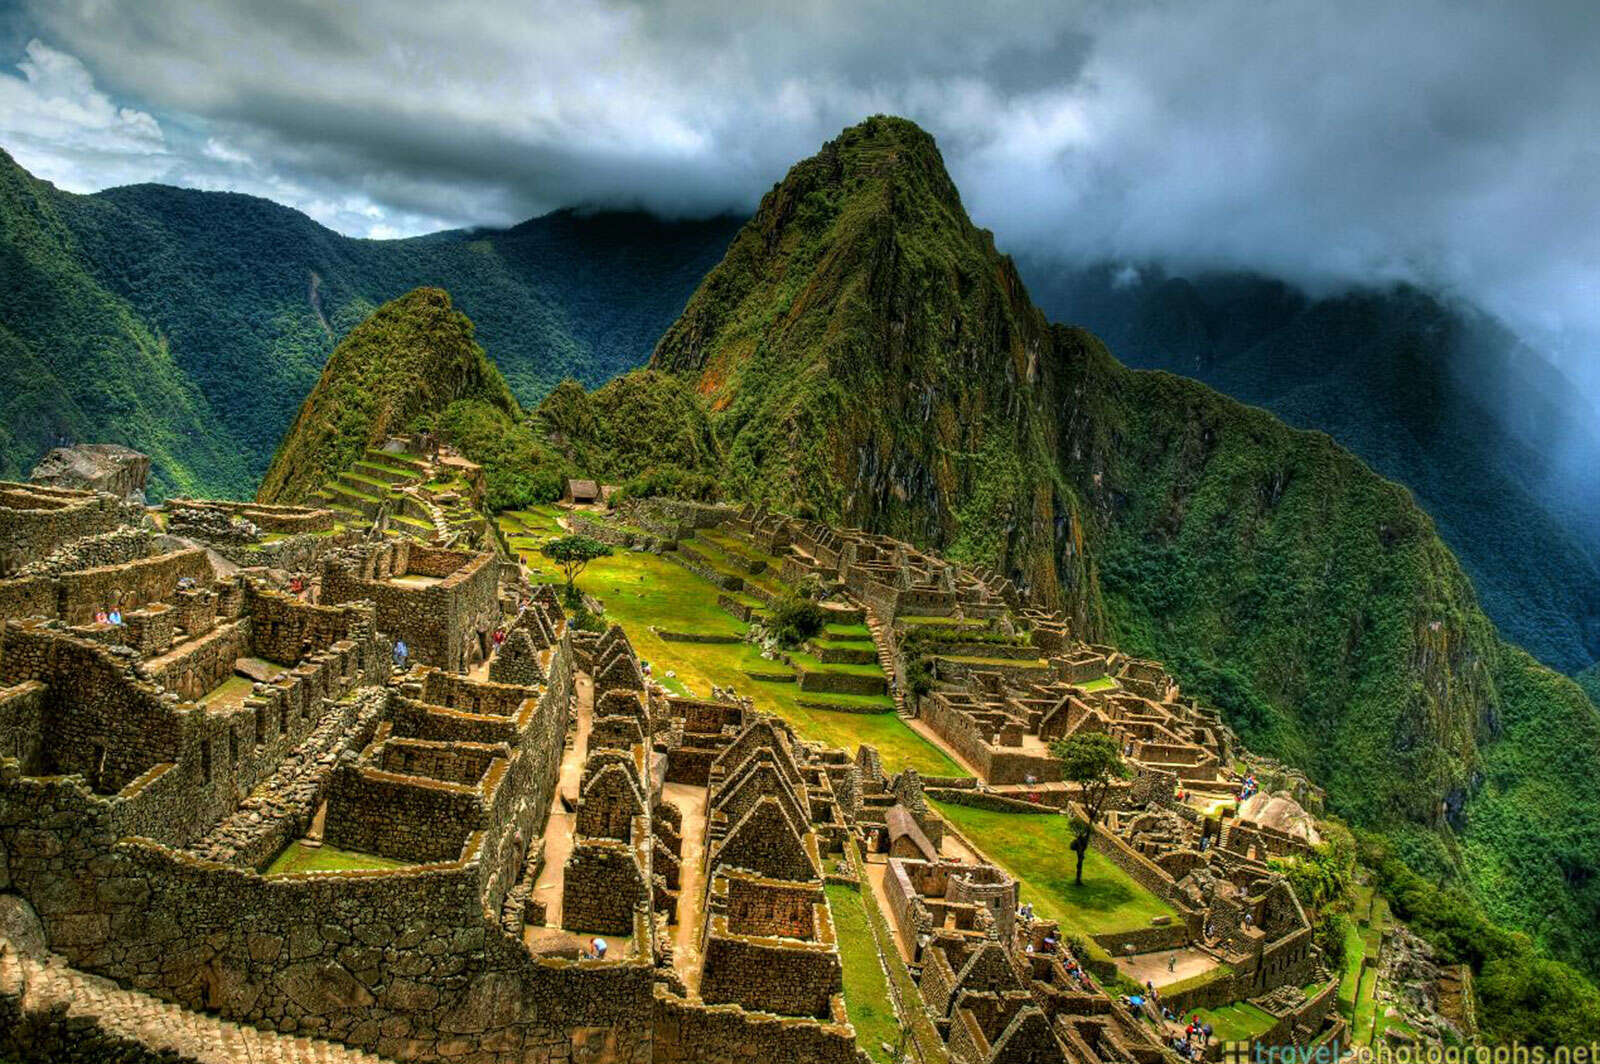 Goway savings up to $870 pp on Peru and the Galapagos!